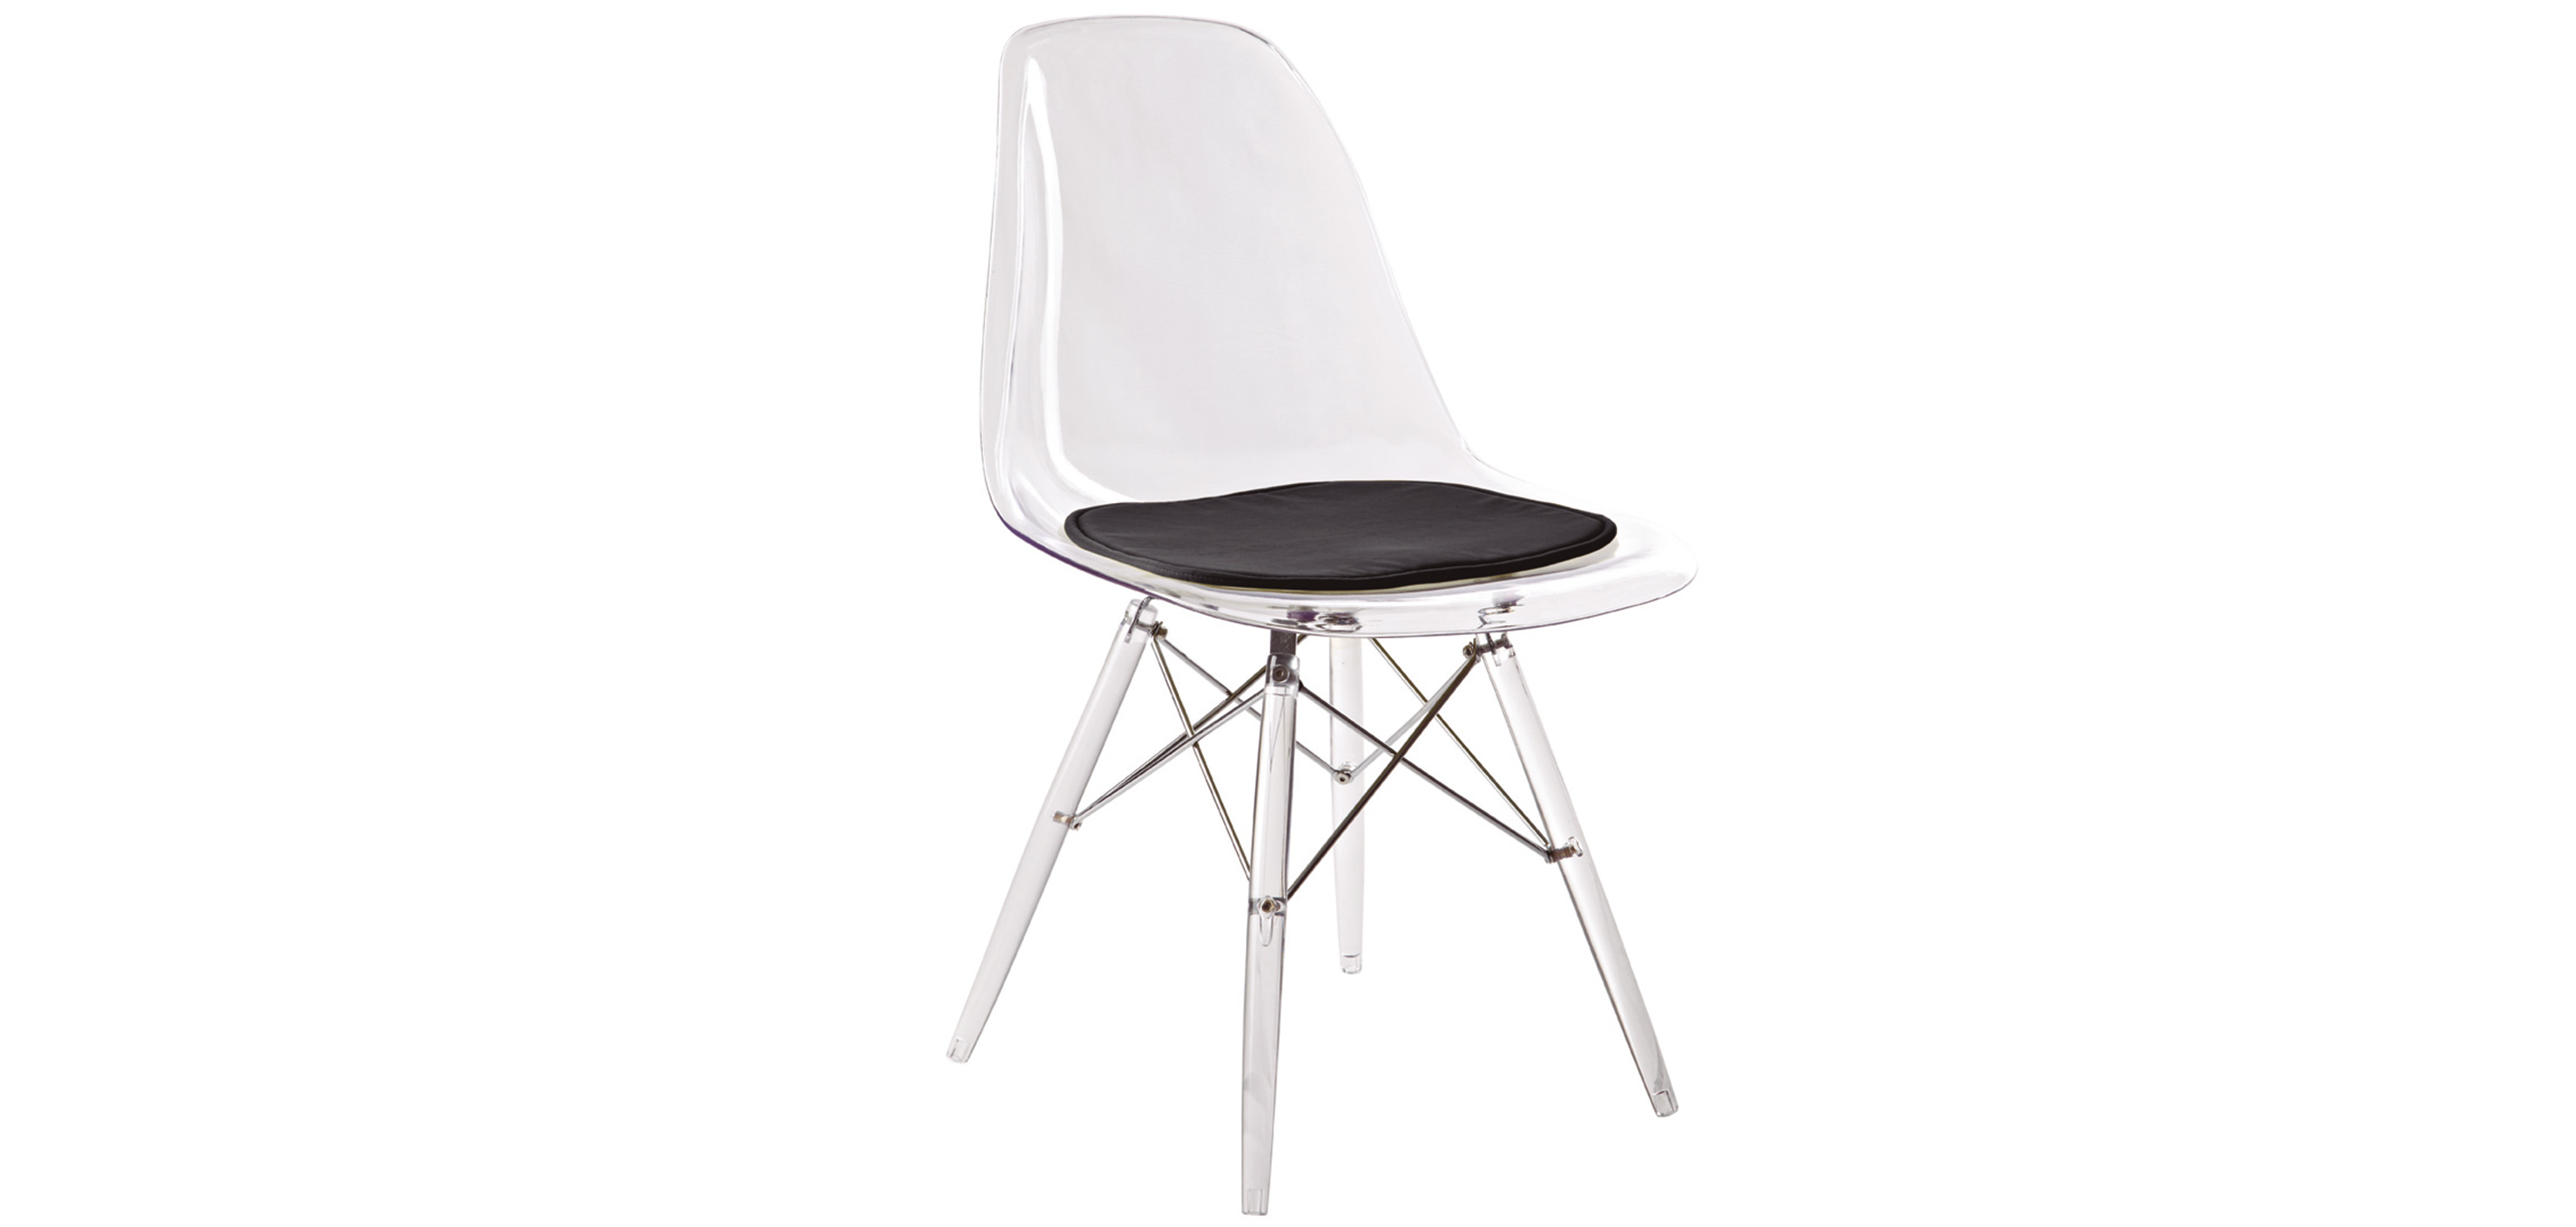 Chaise geneva pi tement transparent polycarbonate pas cher for Galette chaise eames dsw